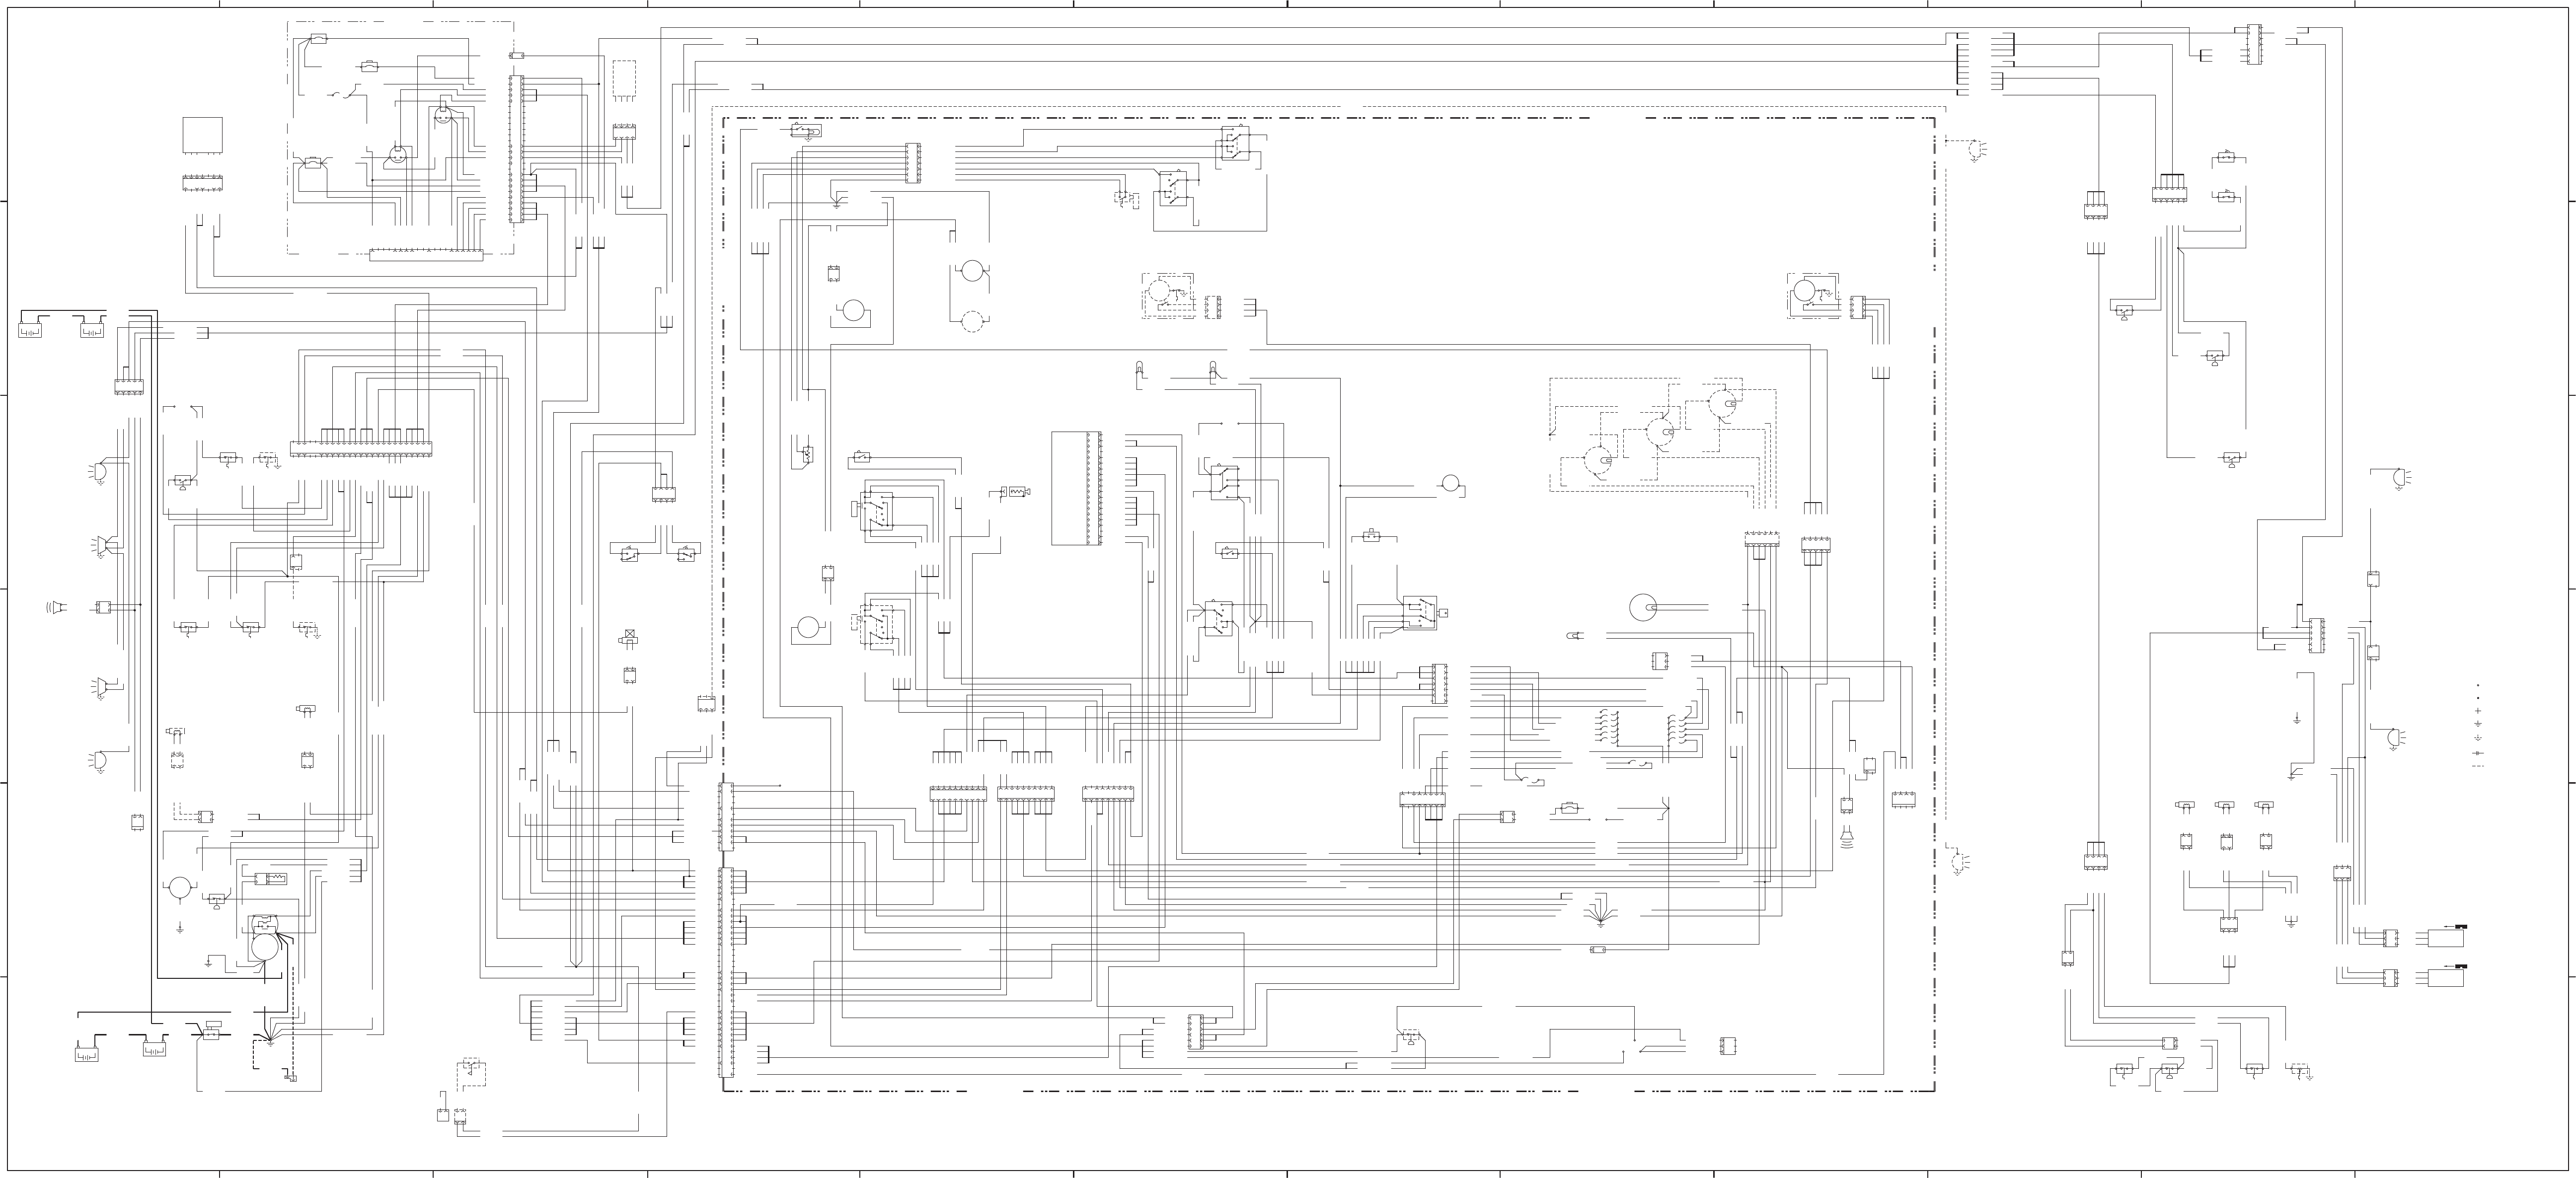 980c Electrical System Schematic